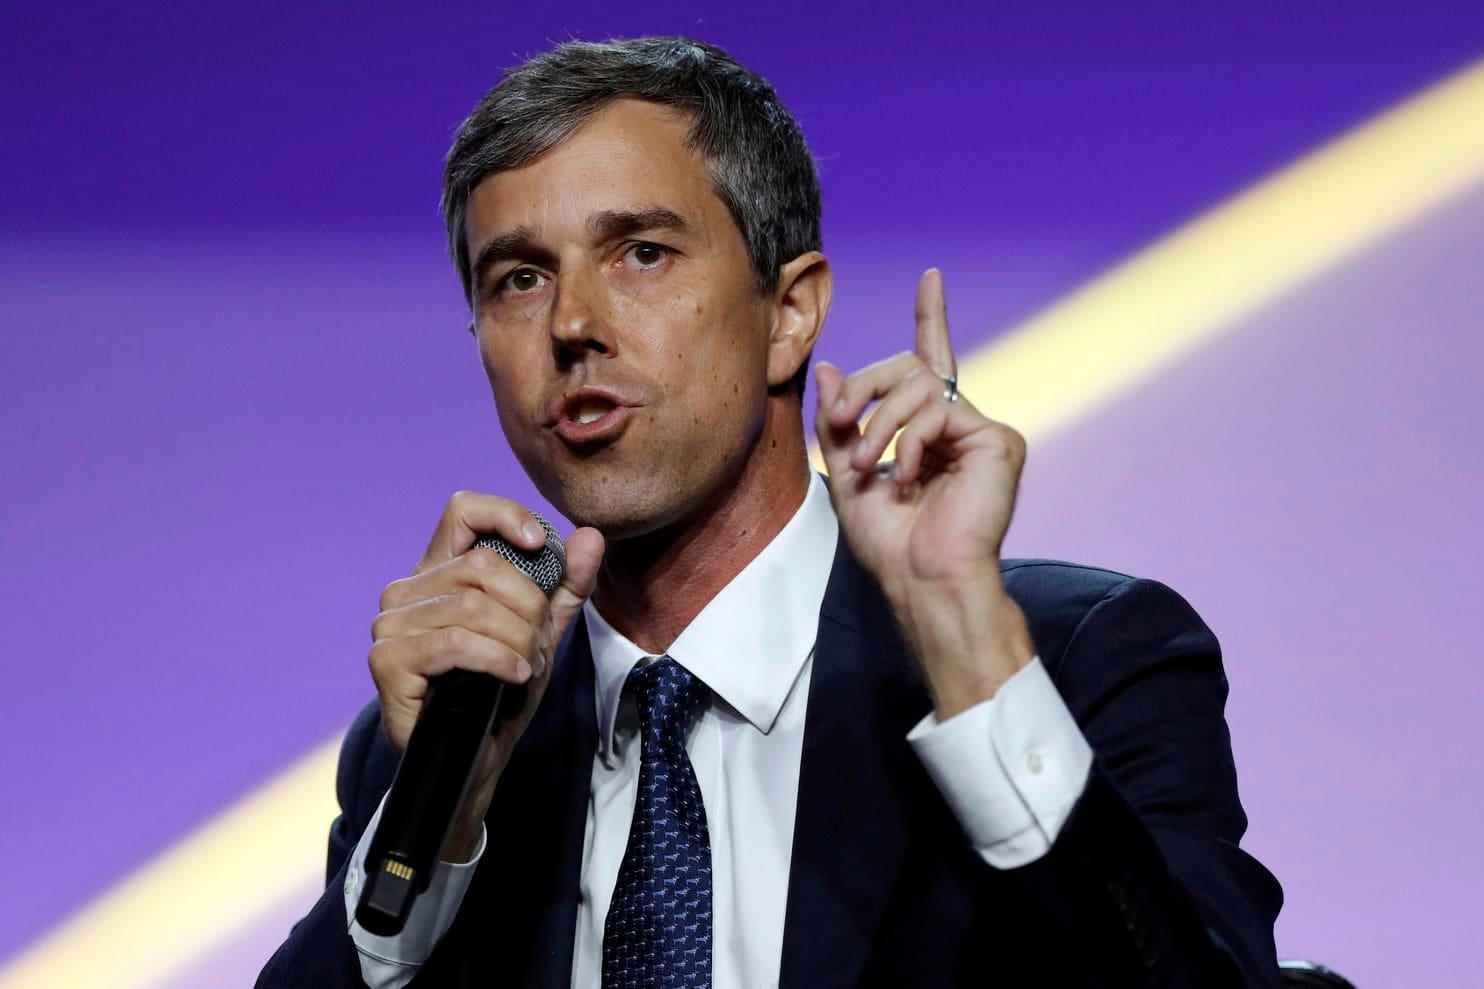 Beto O'Rourke Labels Donald Trump As A 'White Supremacist' - Says He Is A Deadly Threat To All People Of Color In The US